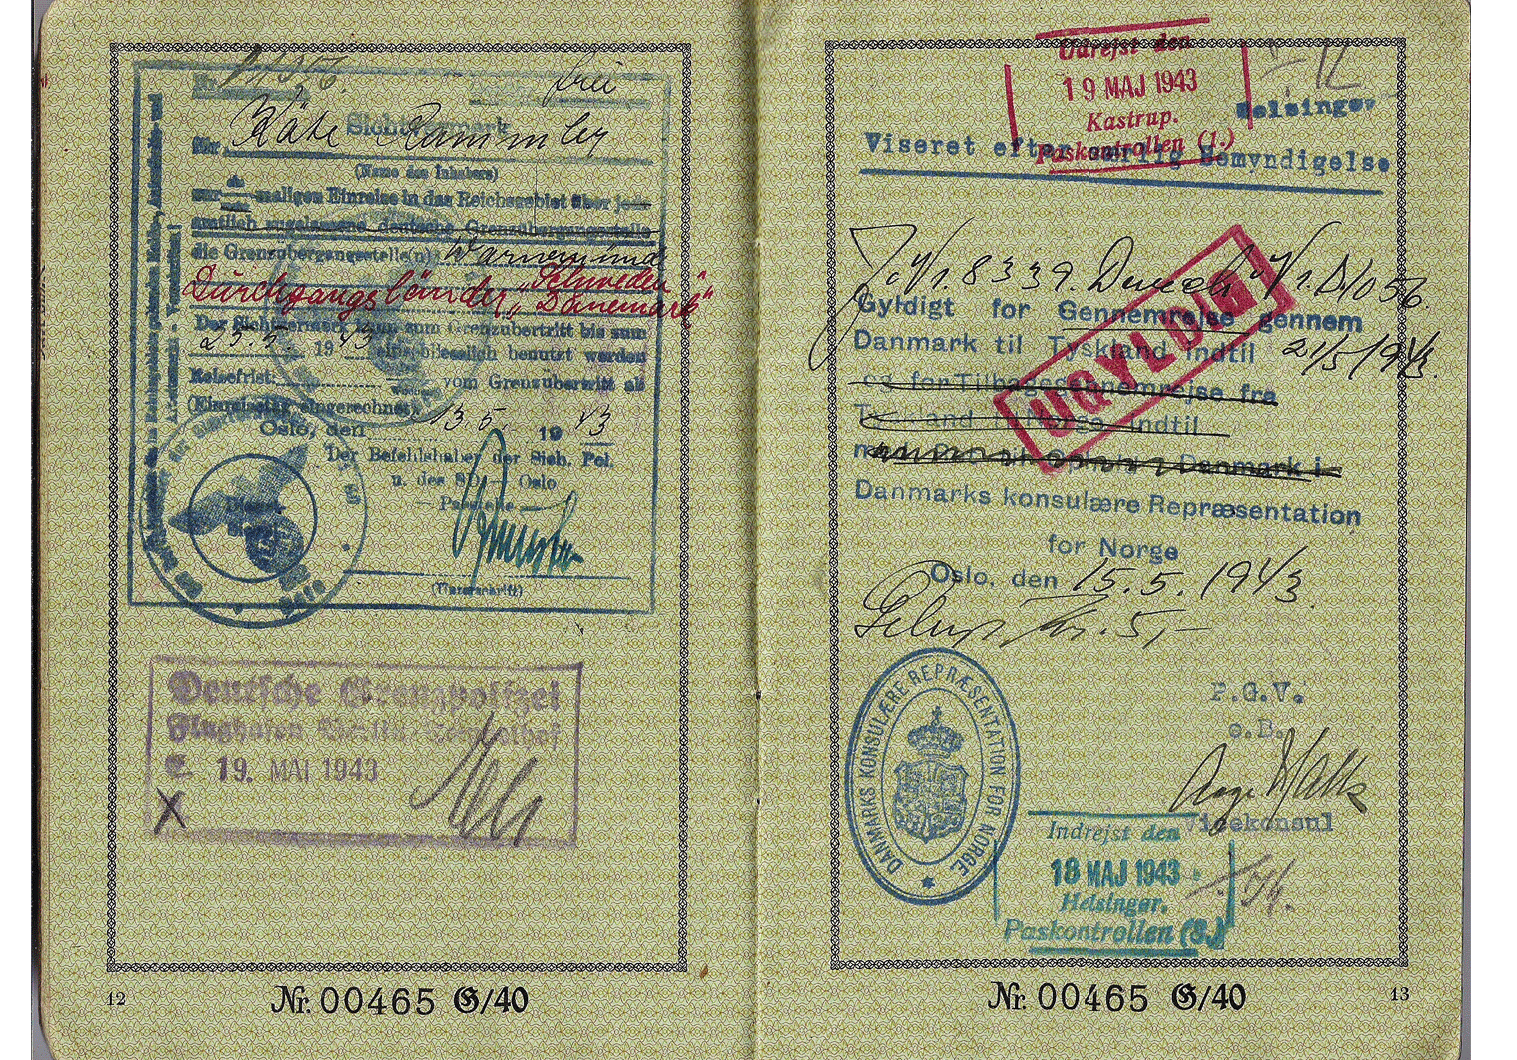 German passport used for Oslo